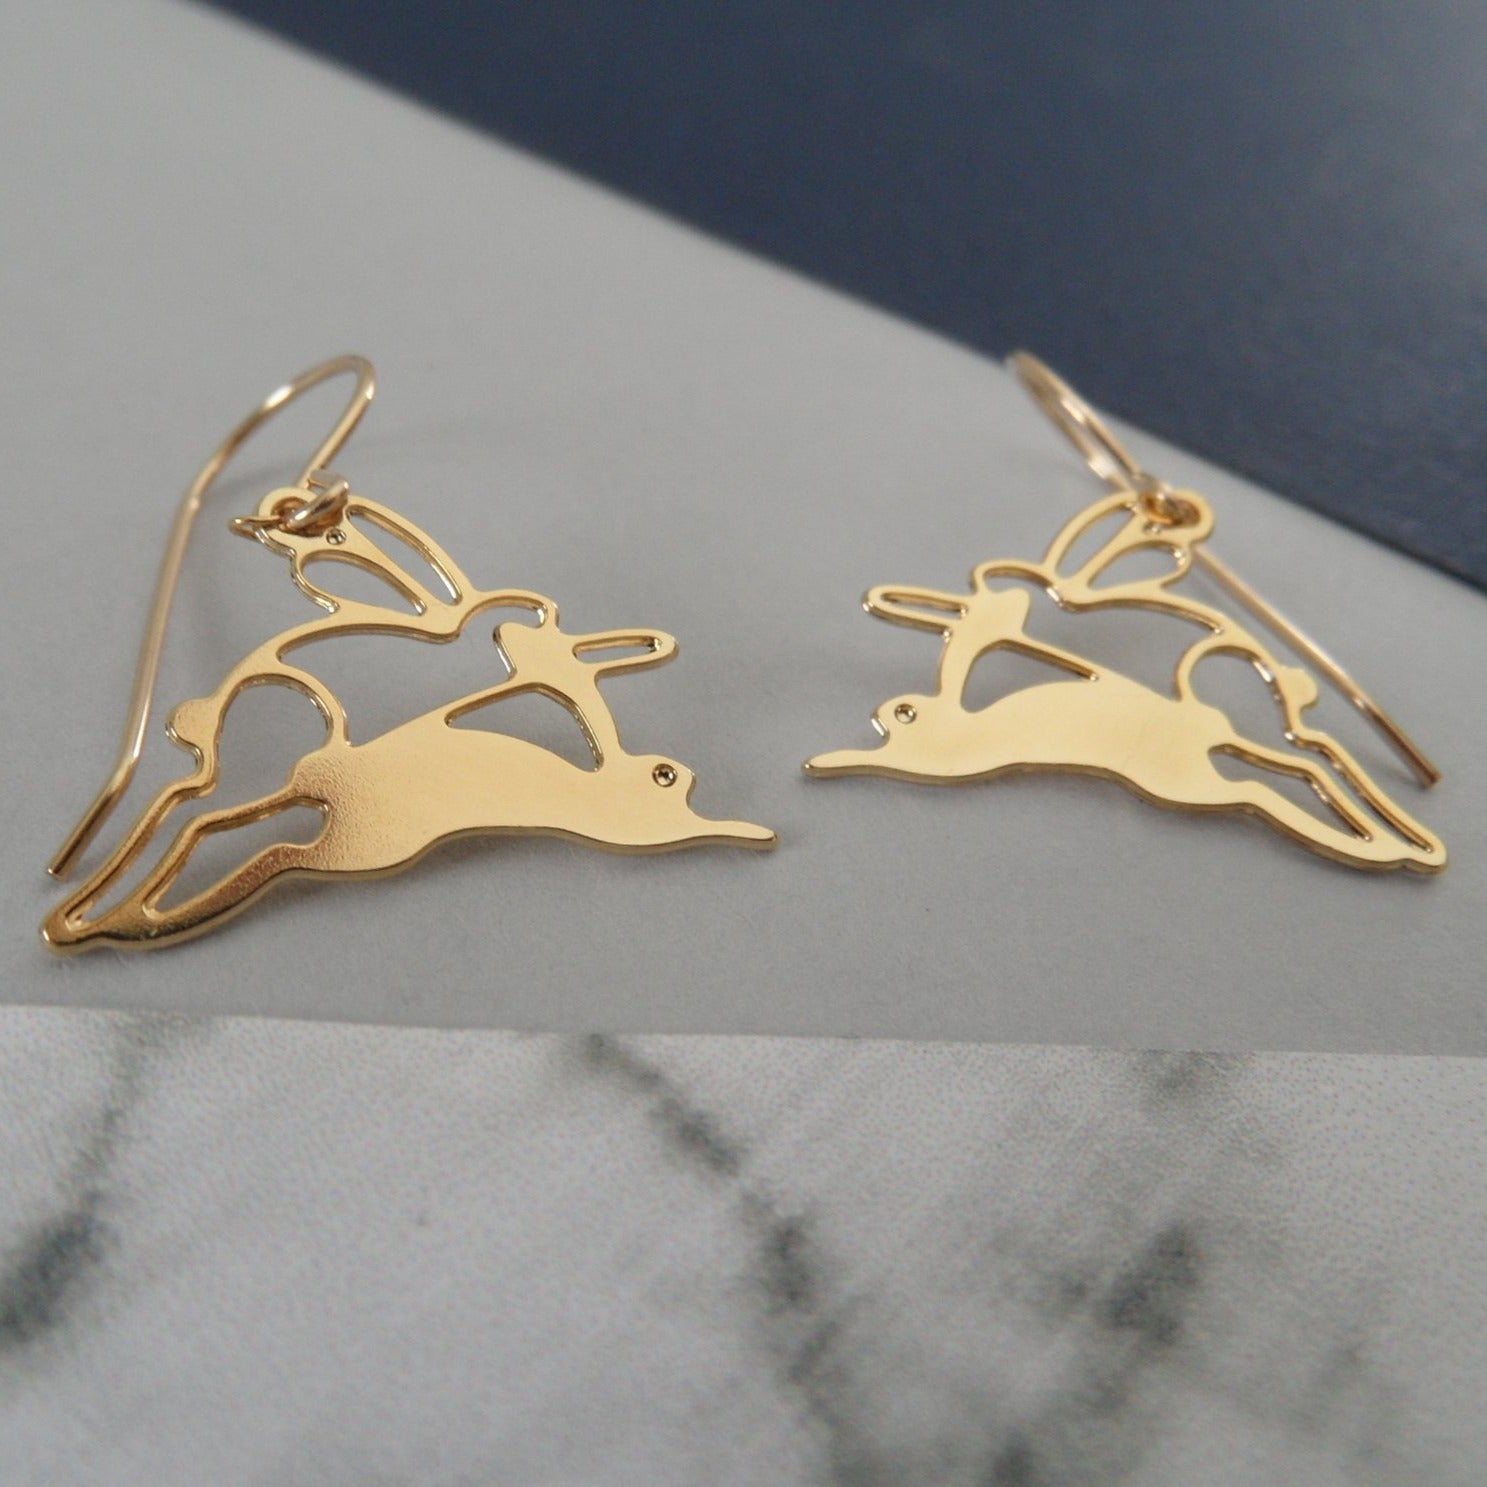 Running Rabbit Earrings